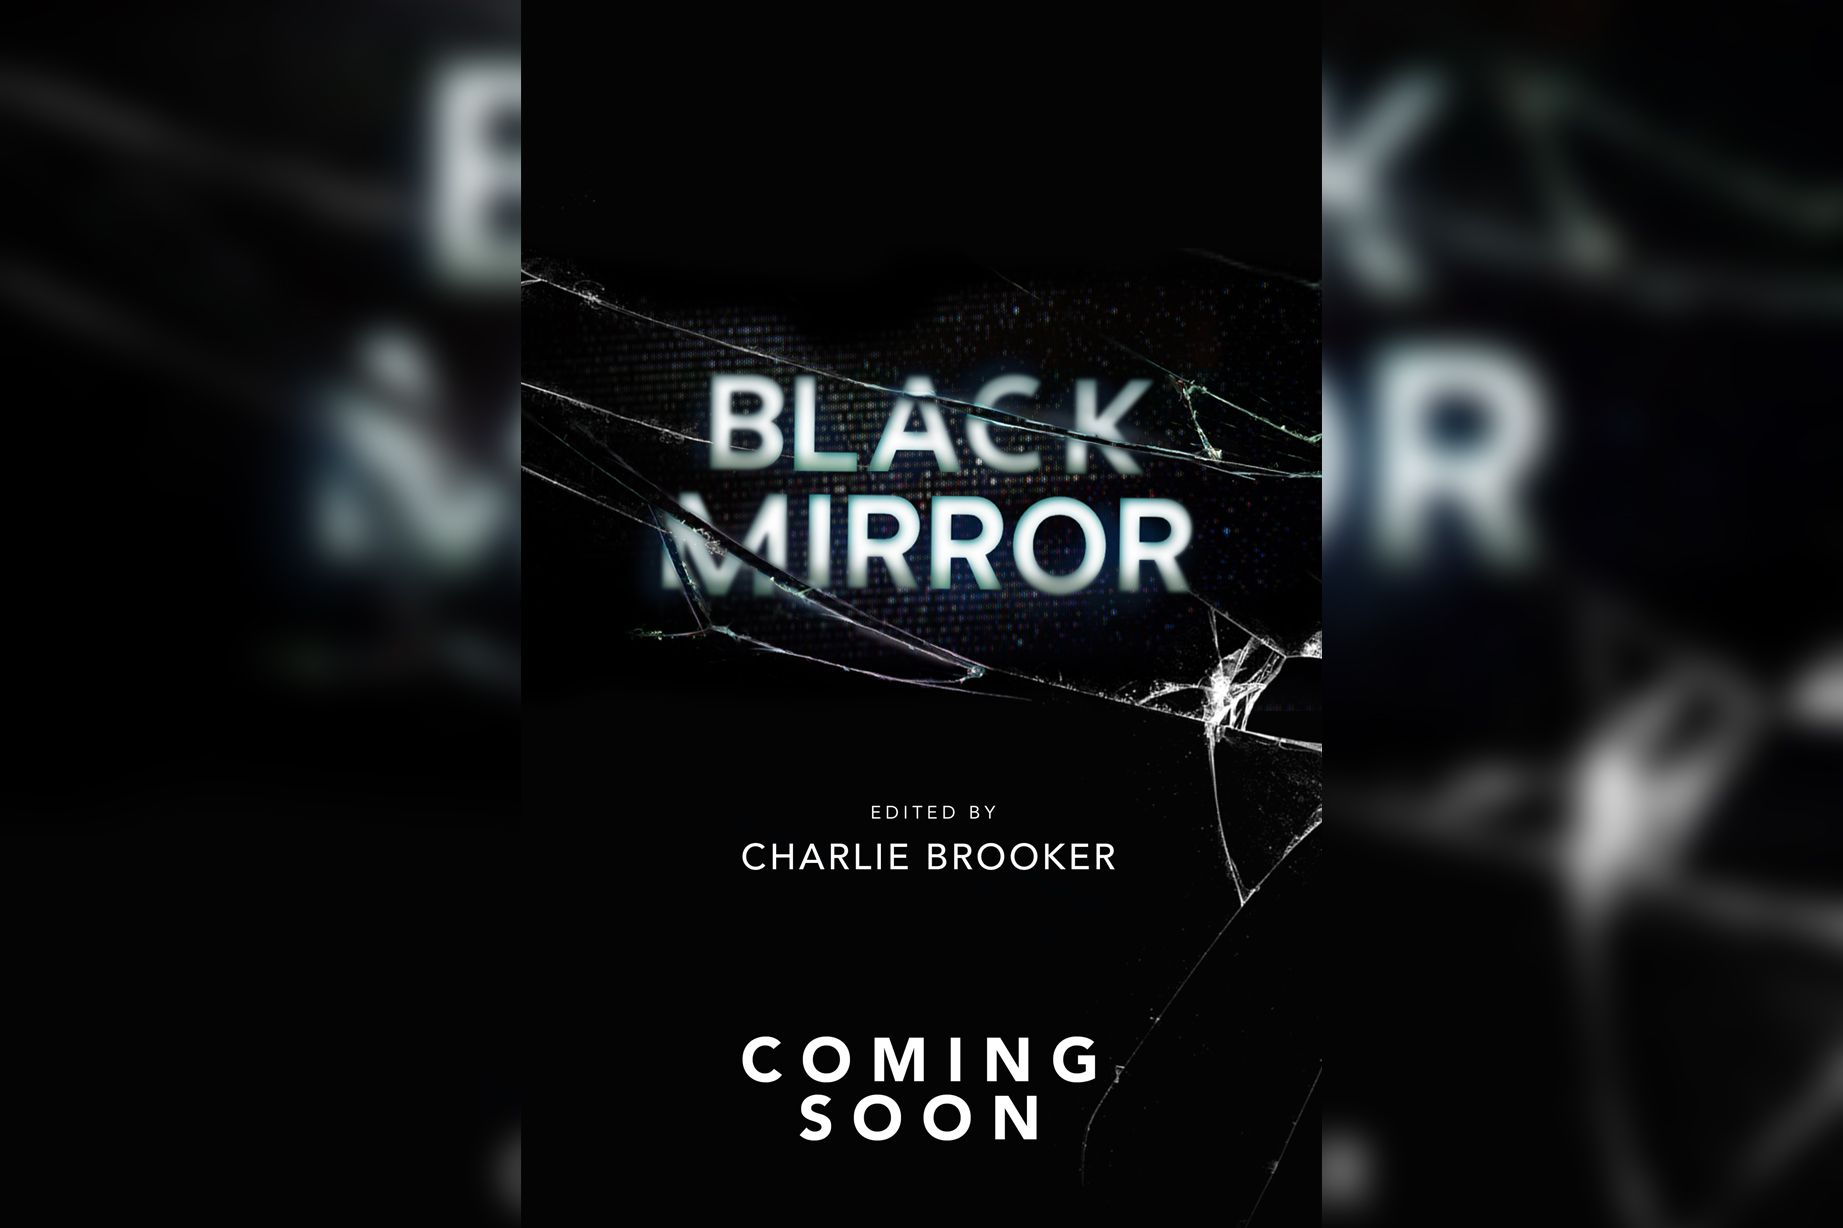 6-13-17 Black Mirror book series